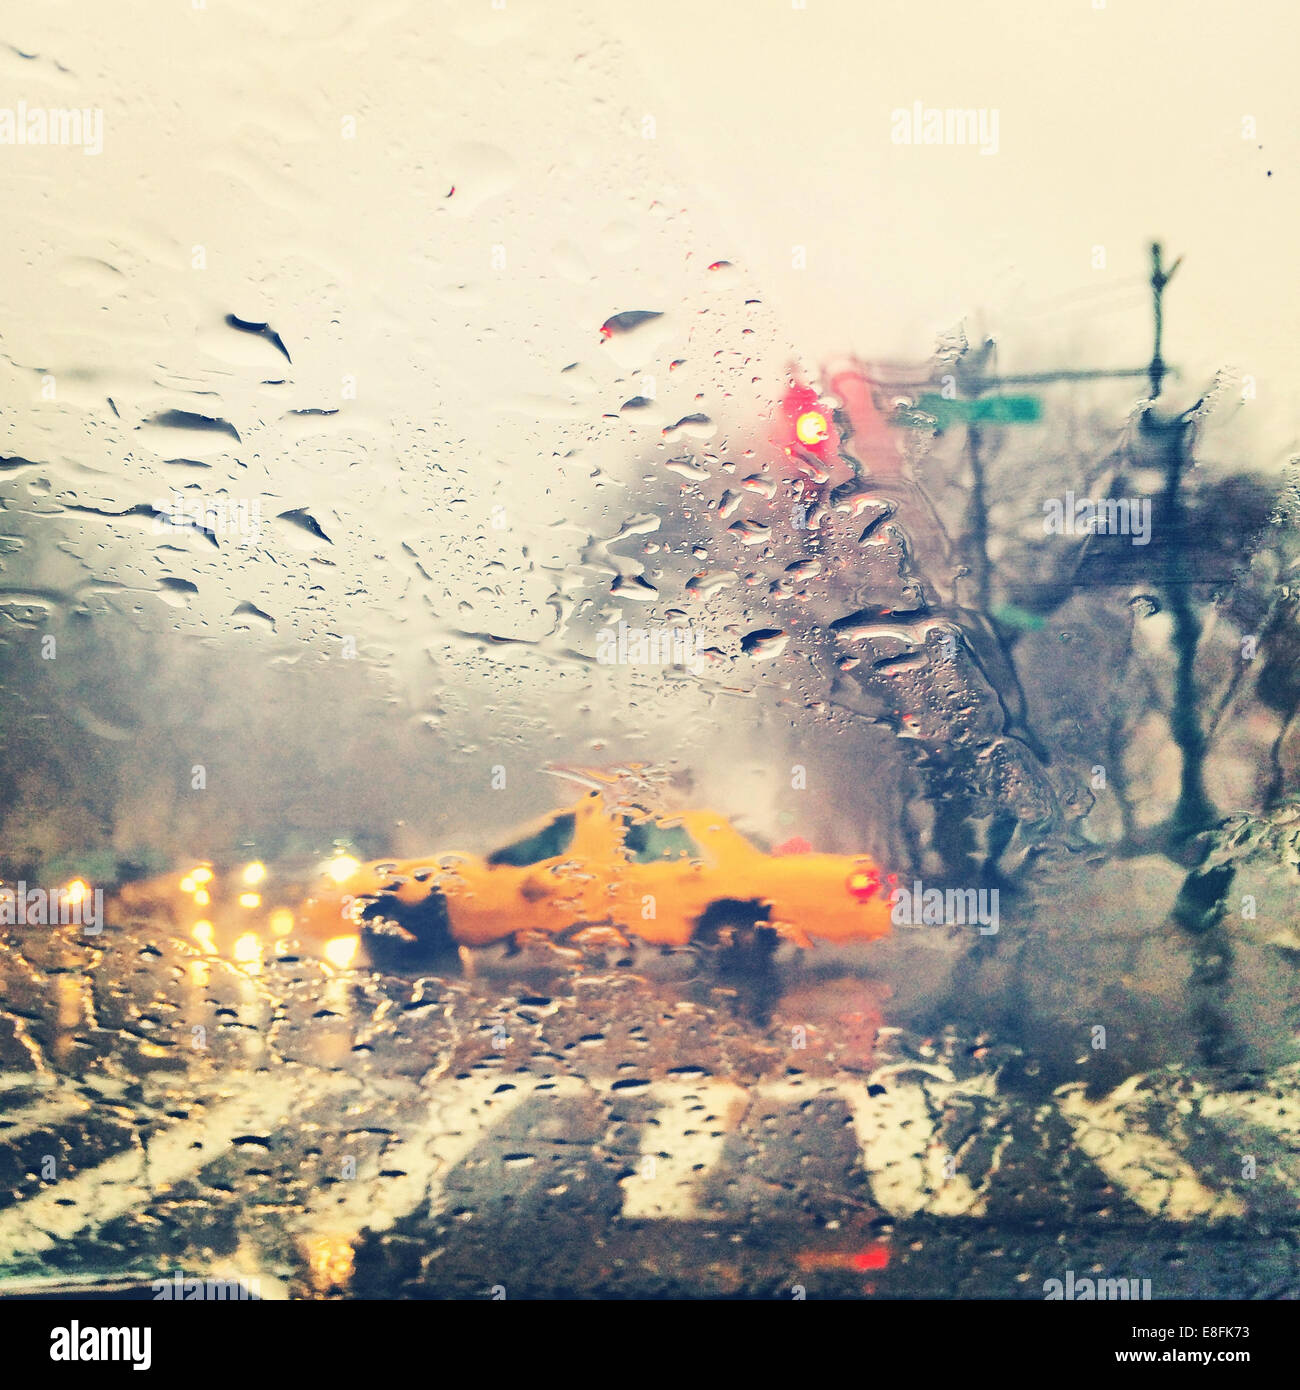 USA, New York State, New York City, Brooklyn, Taxi cab in rain - Stock Image